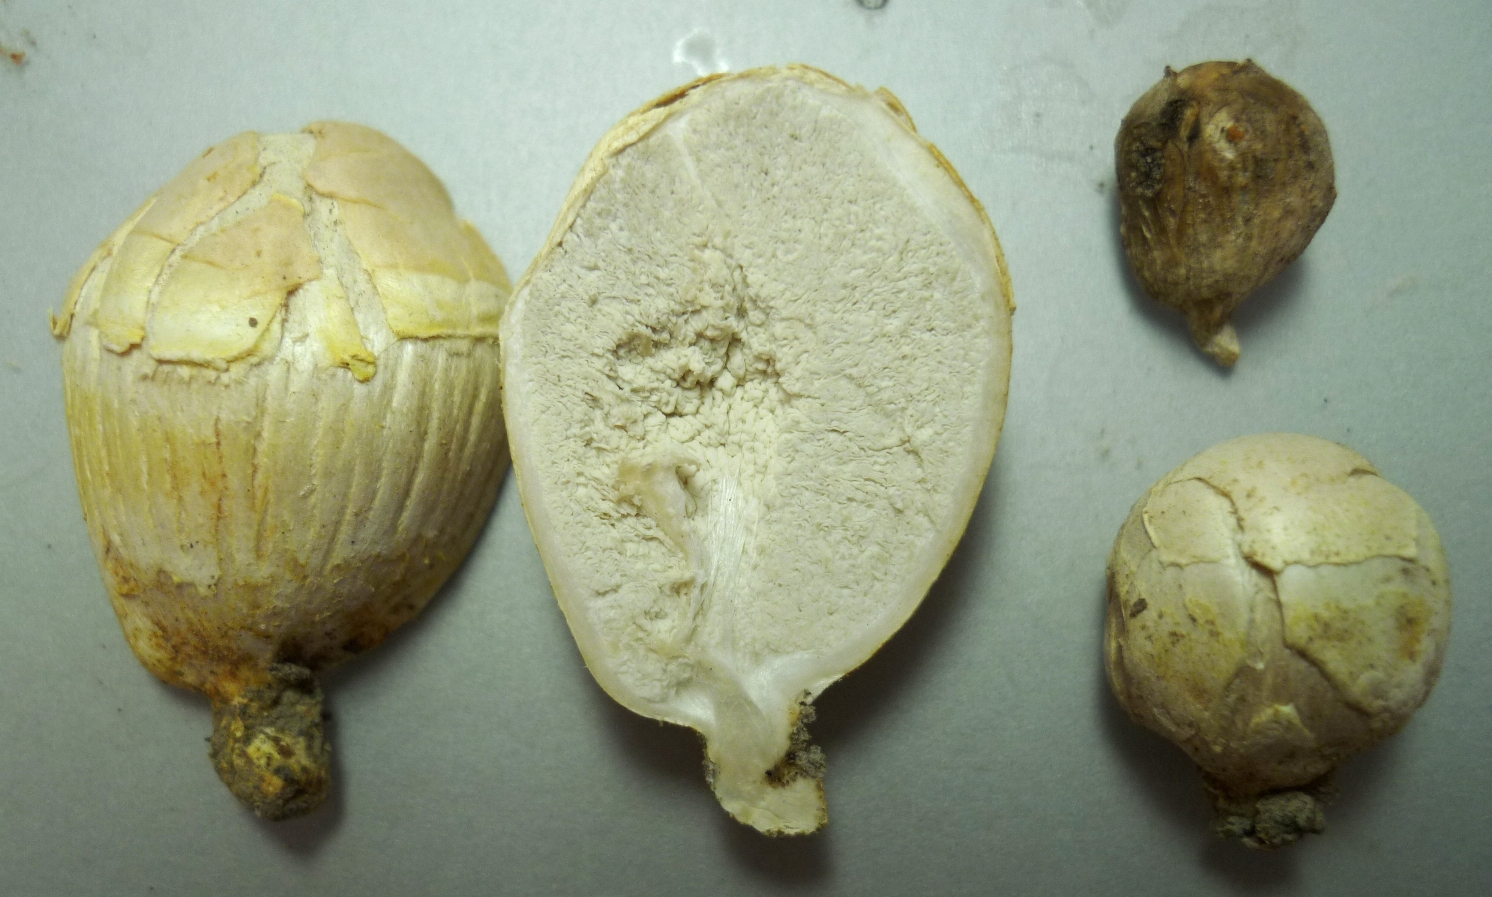 A new fungus from the Neds Corner Bush Blitz. This truffle-like species was named Agaricus colpeteus in honour of property managers Colleen and Peter Barnes, © Royal Botanic Gardens Victoria